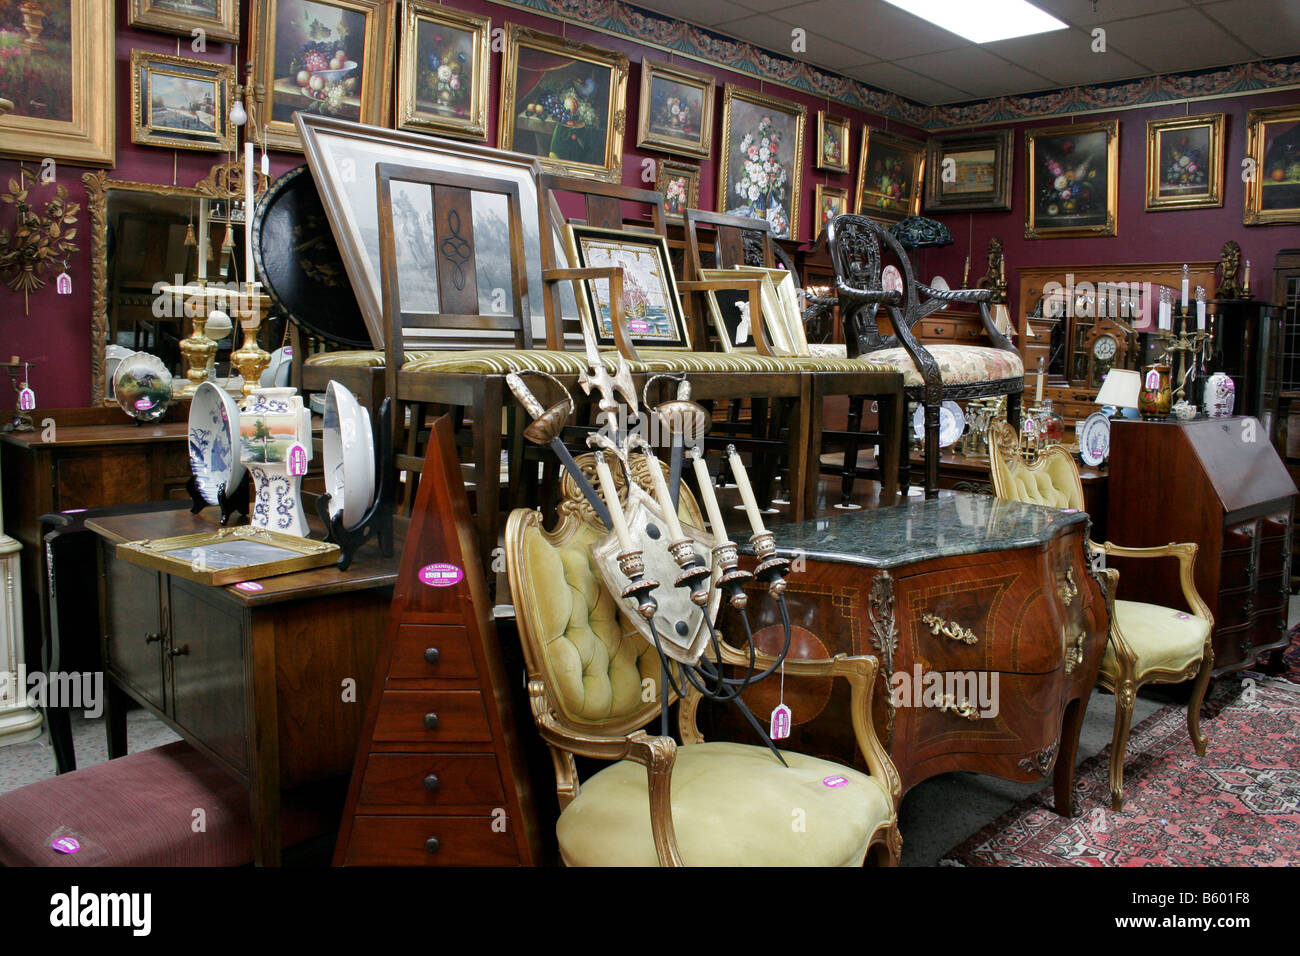 Antique store and auction house - Antique Store And Auction House Stock Photo: 20899516 - Alamy